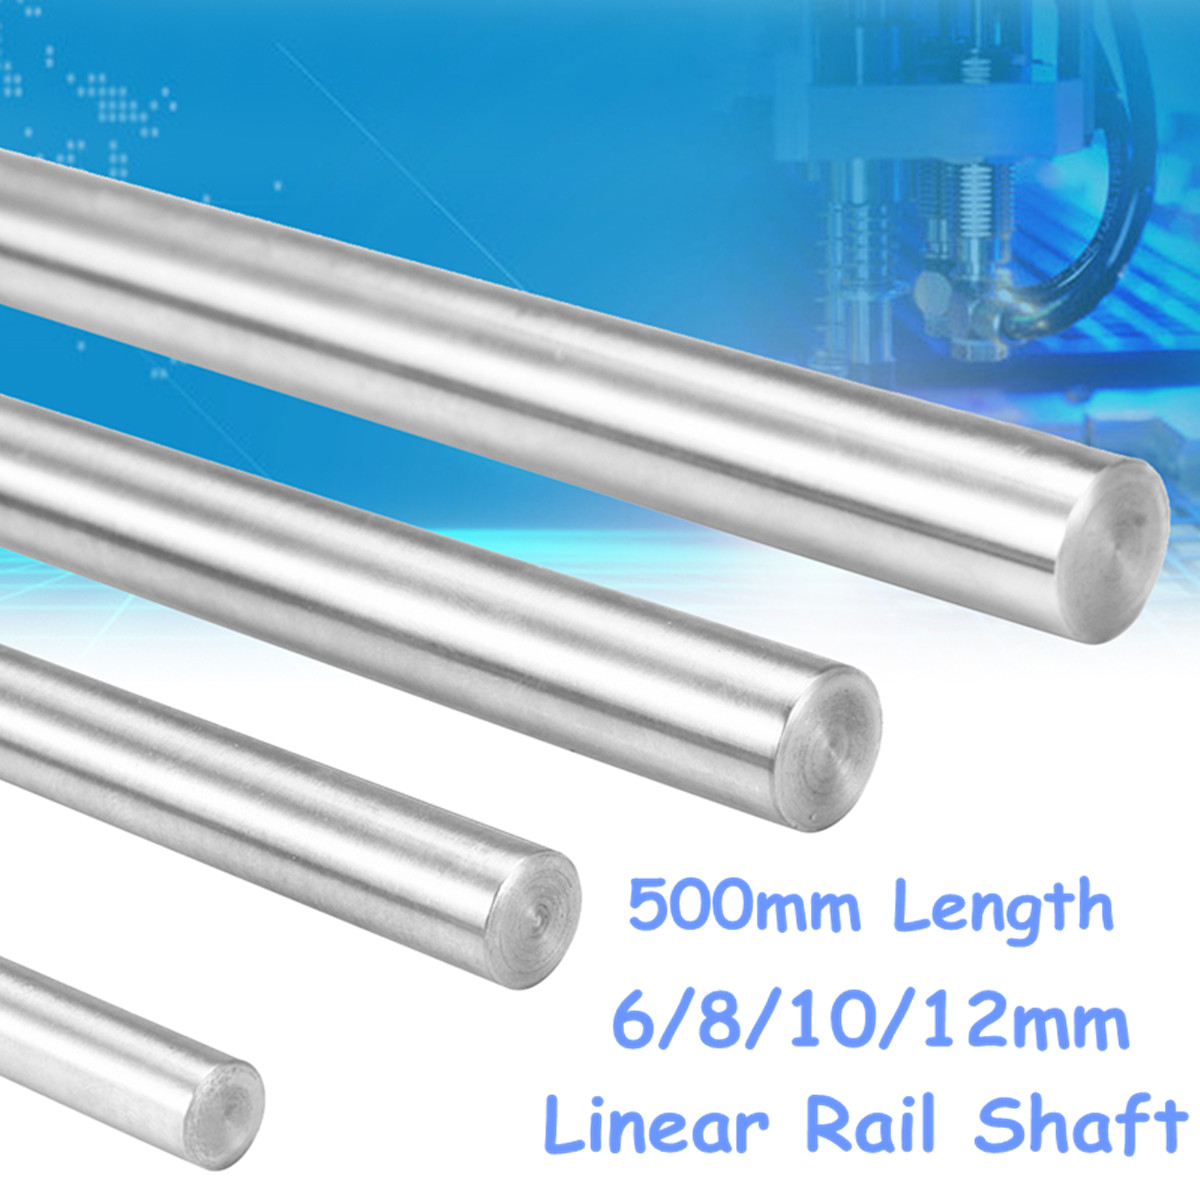 100-500mm 15mm CNC 3D Printer Axis Chromed Smooth Rod Steel Linear Rail Shaft !